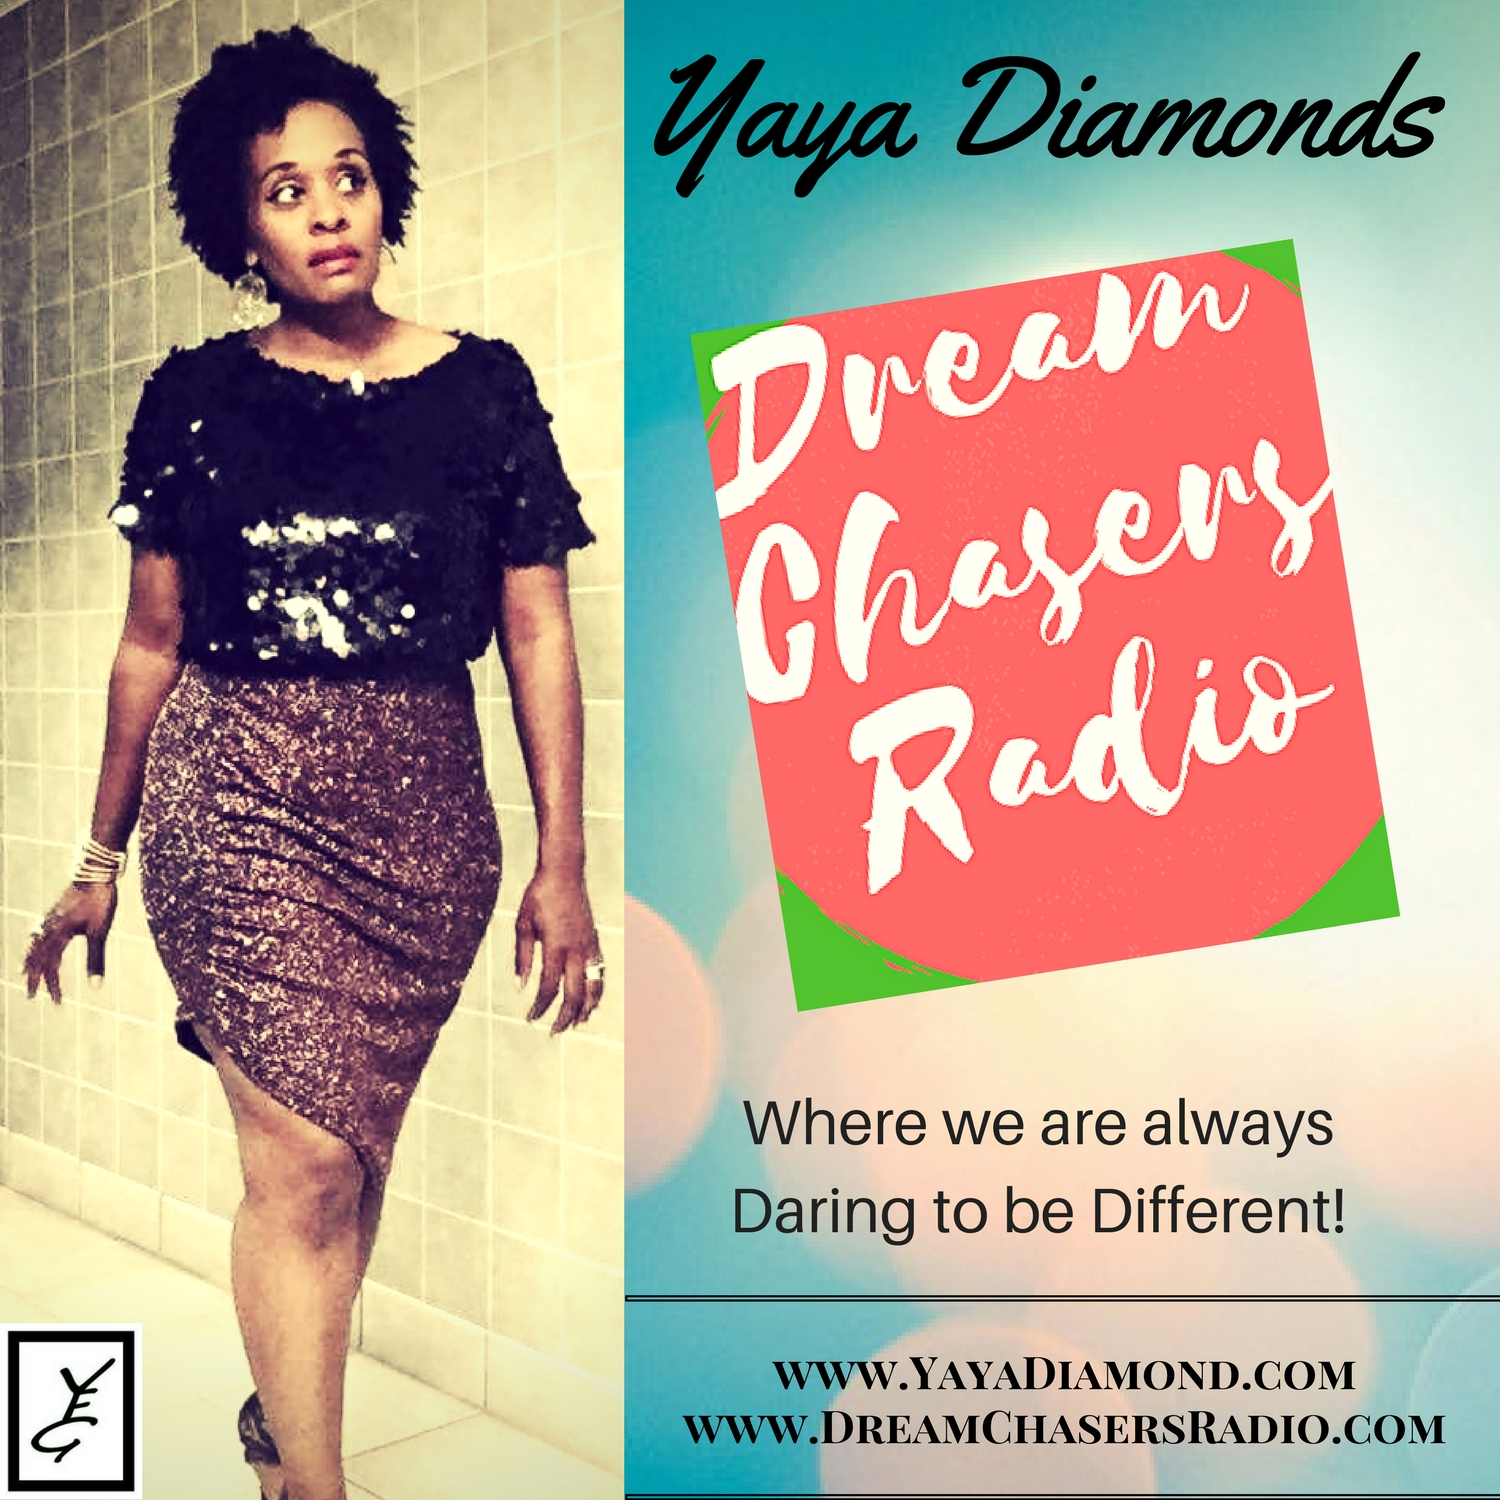 interview you on Dream Chasers Radio